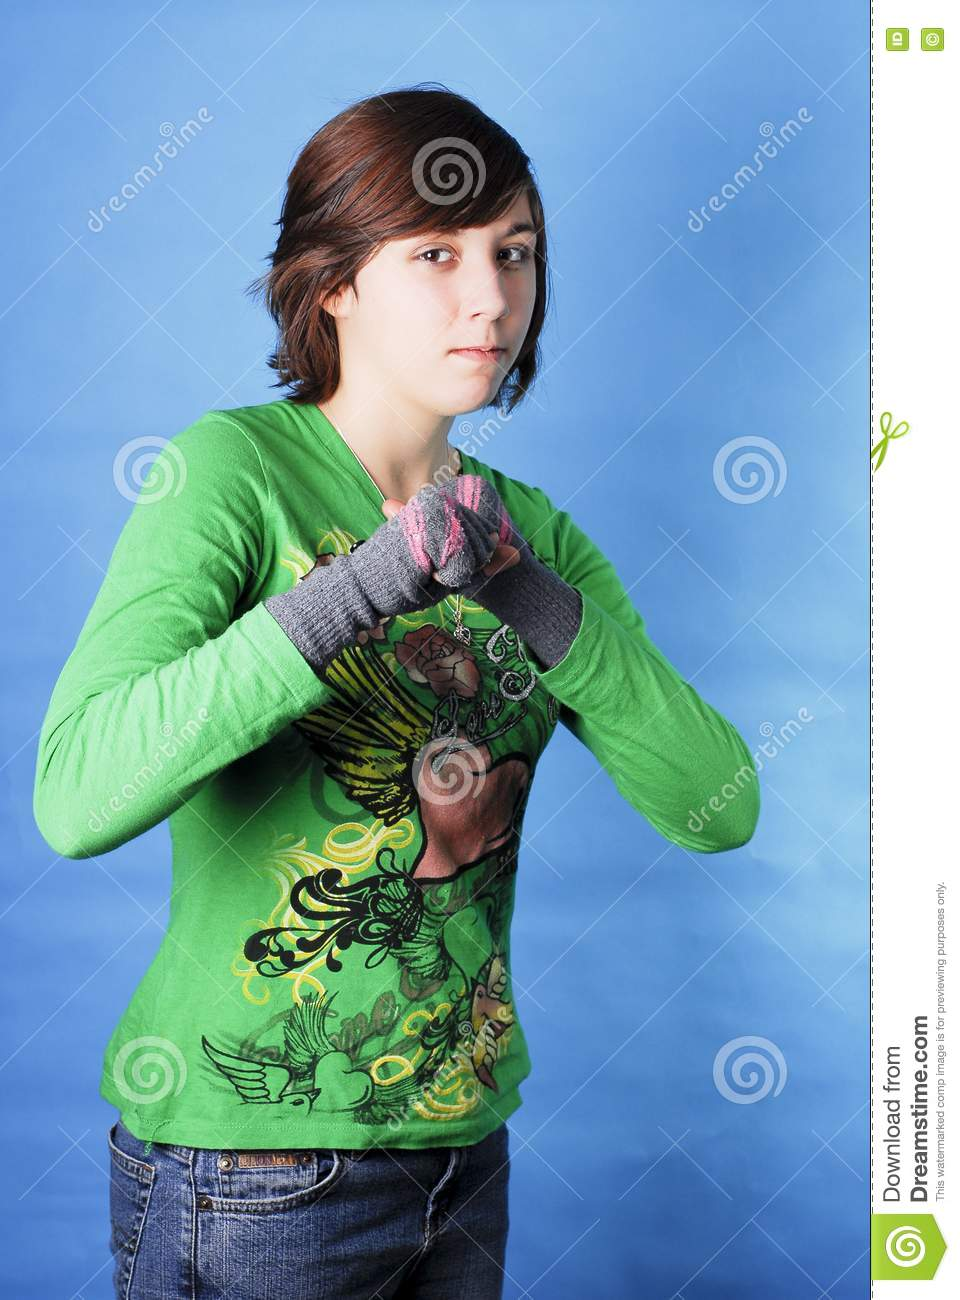 15 Year Boys Bedroom: Girl Looking Tough Royalty Free Stock Image